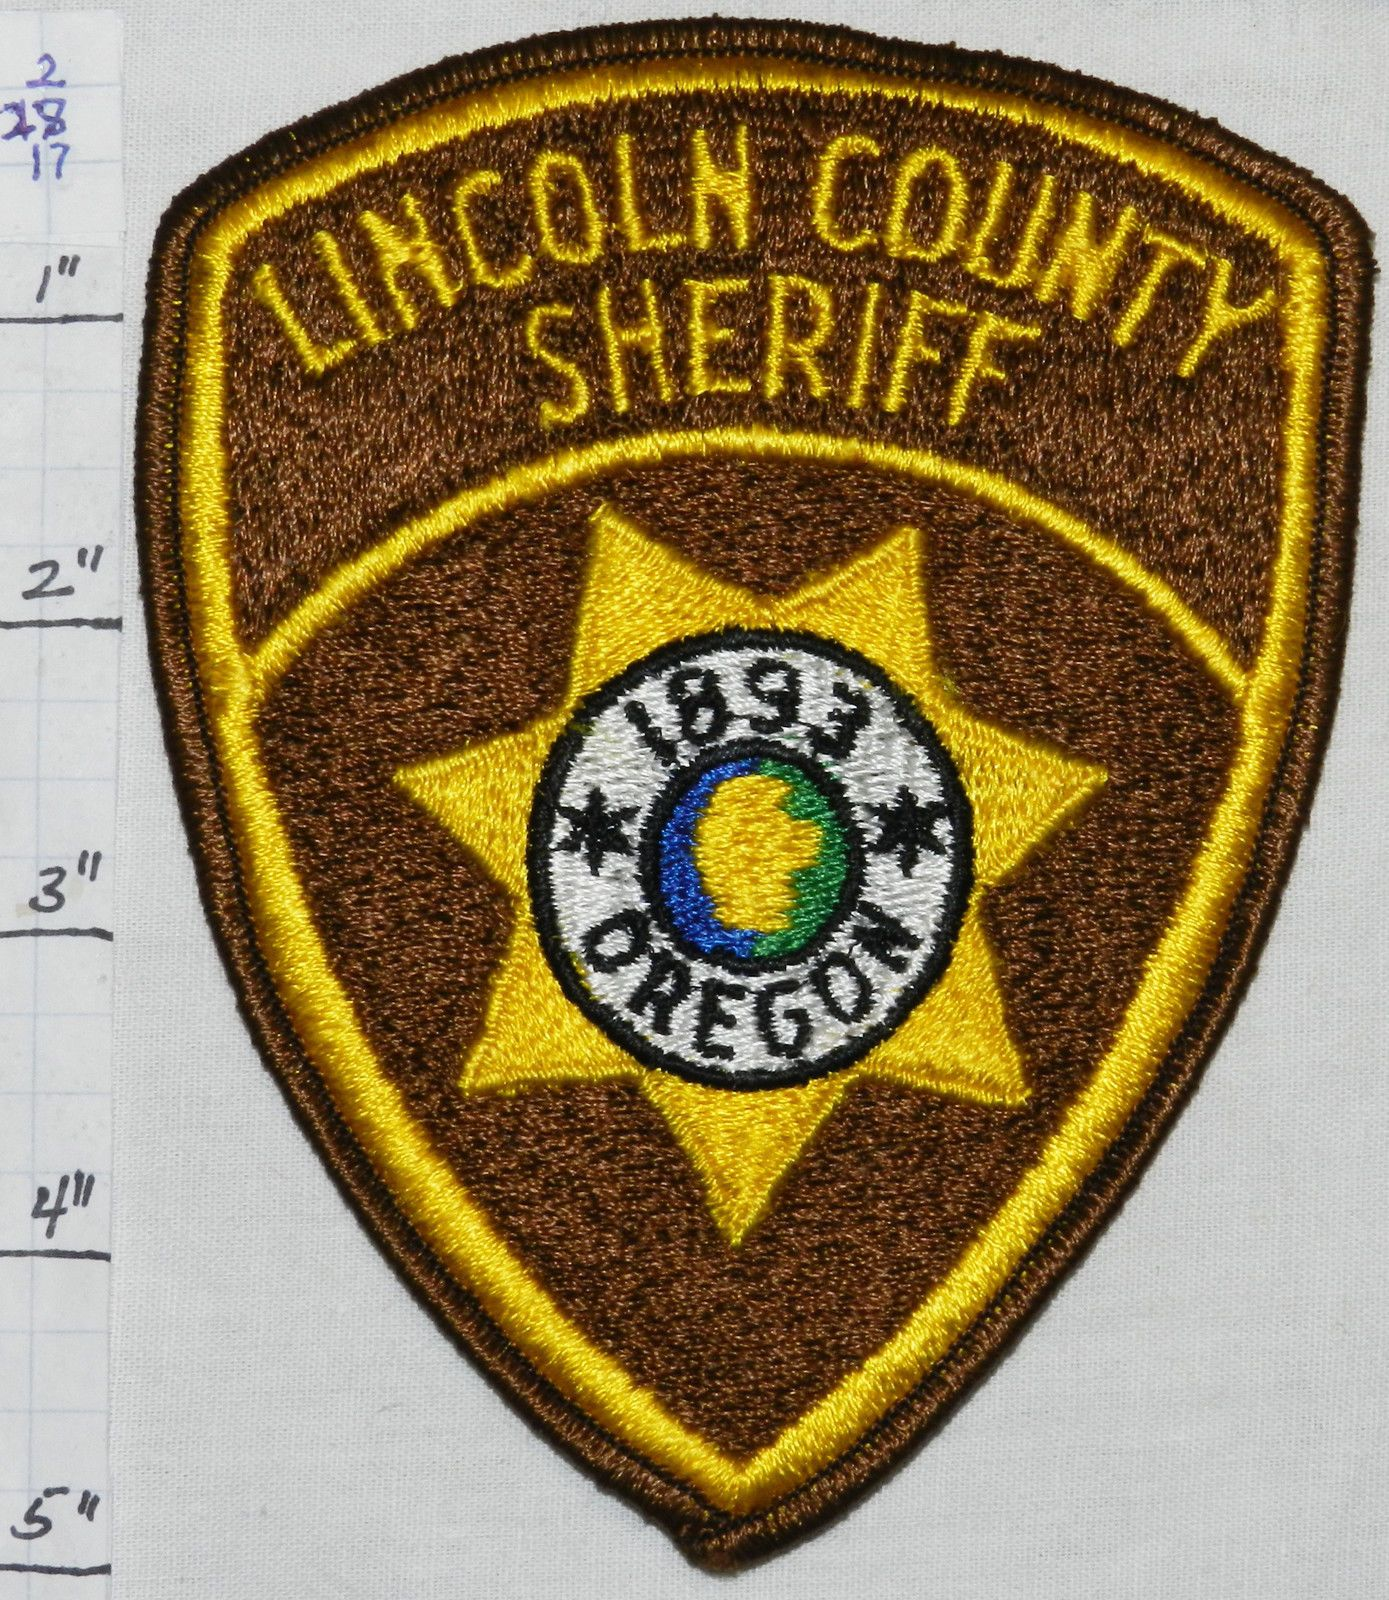 Lincoln County Oregon Sheriff Patch Fire Highway Patrol State Police 19 99 Lincoln County Police Patches Sheriff